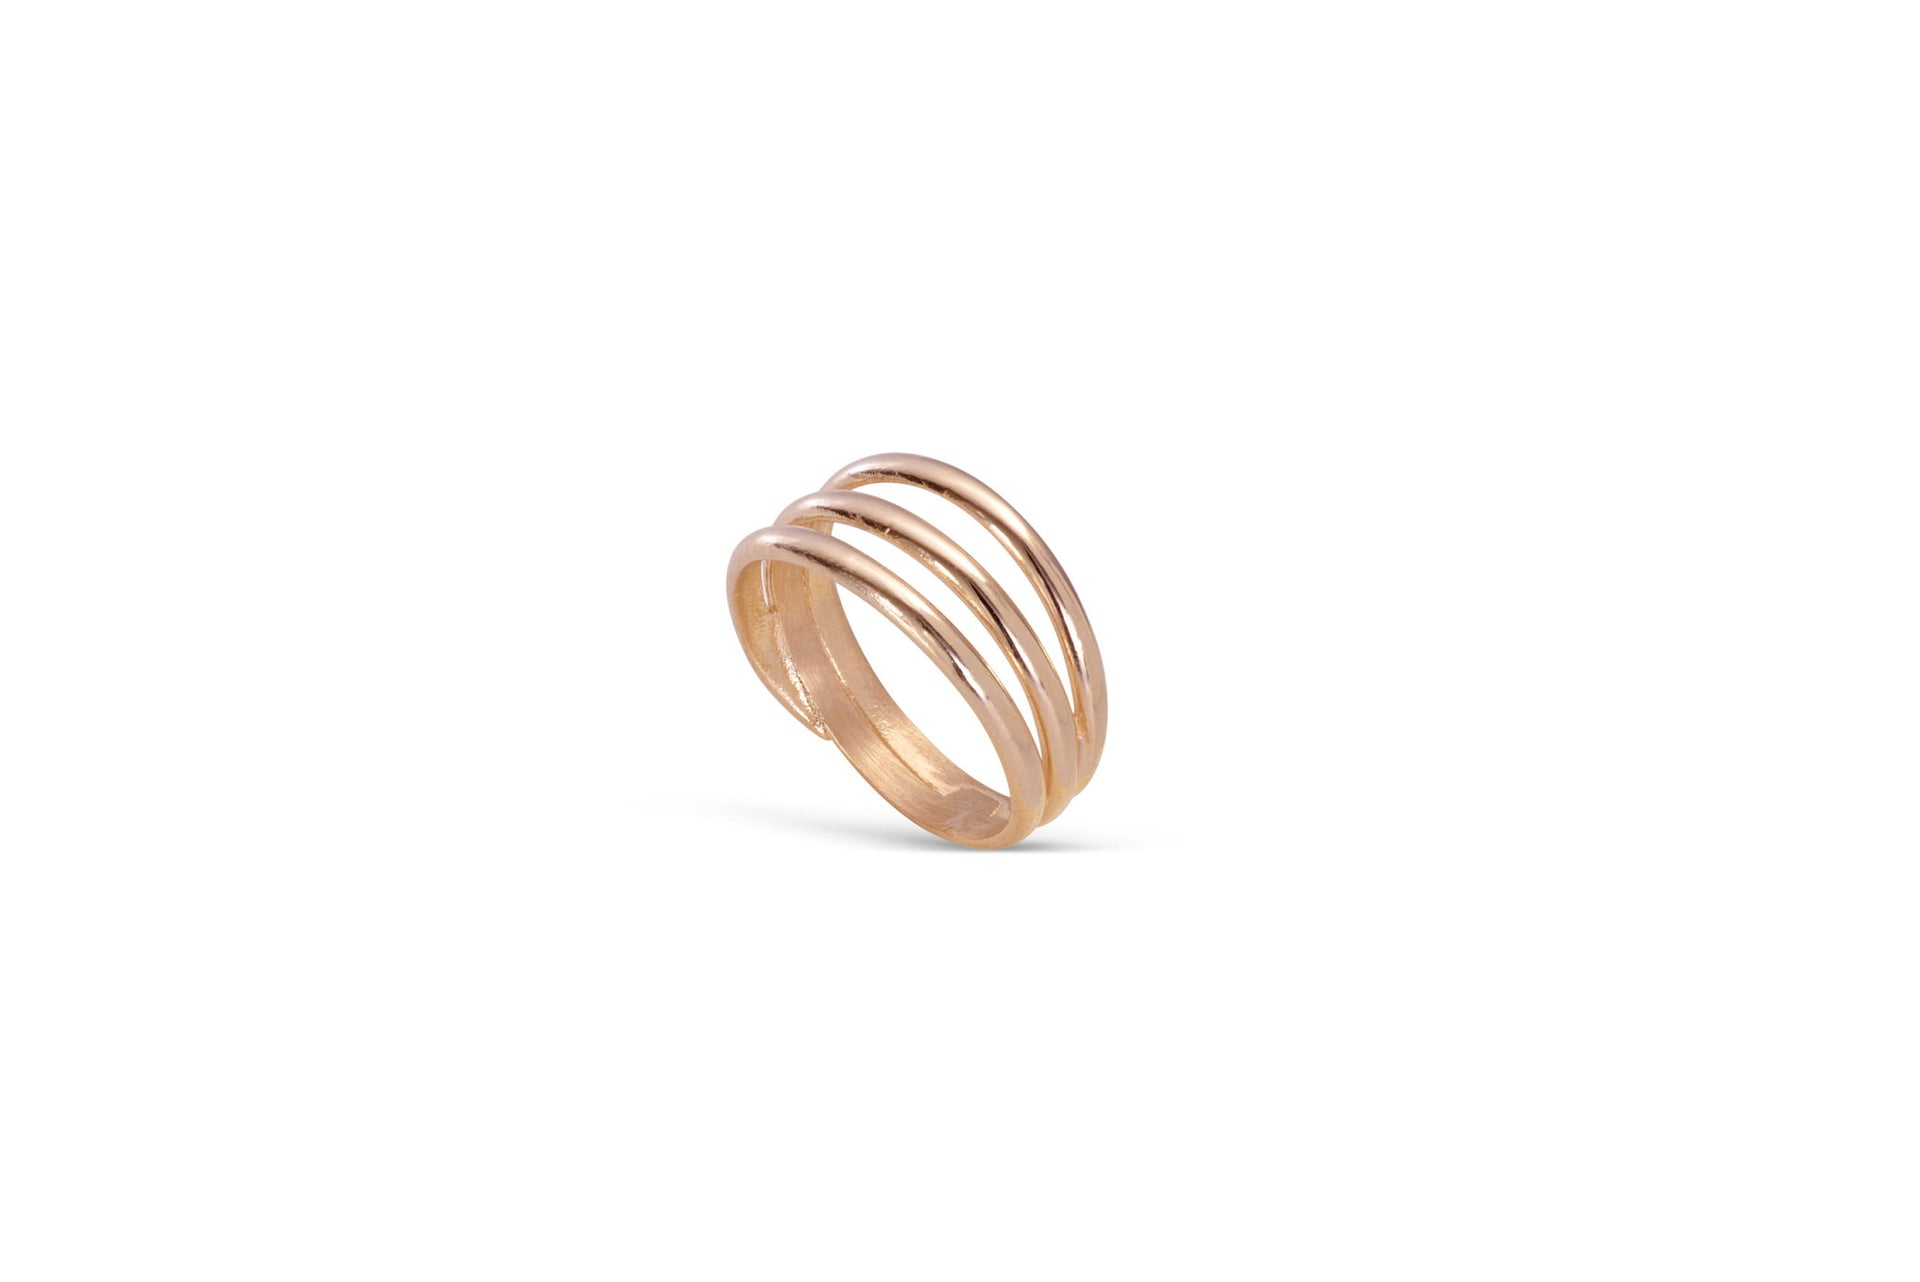 Signature Trio ring solid rose gold by KarenAsh New York